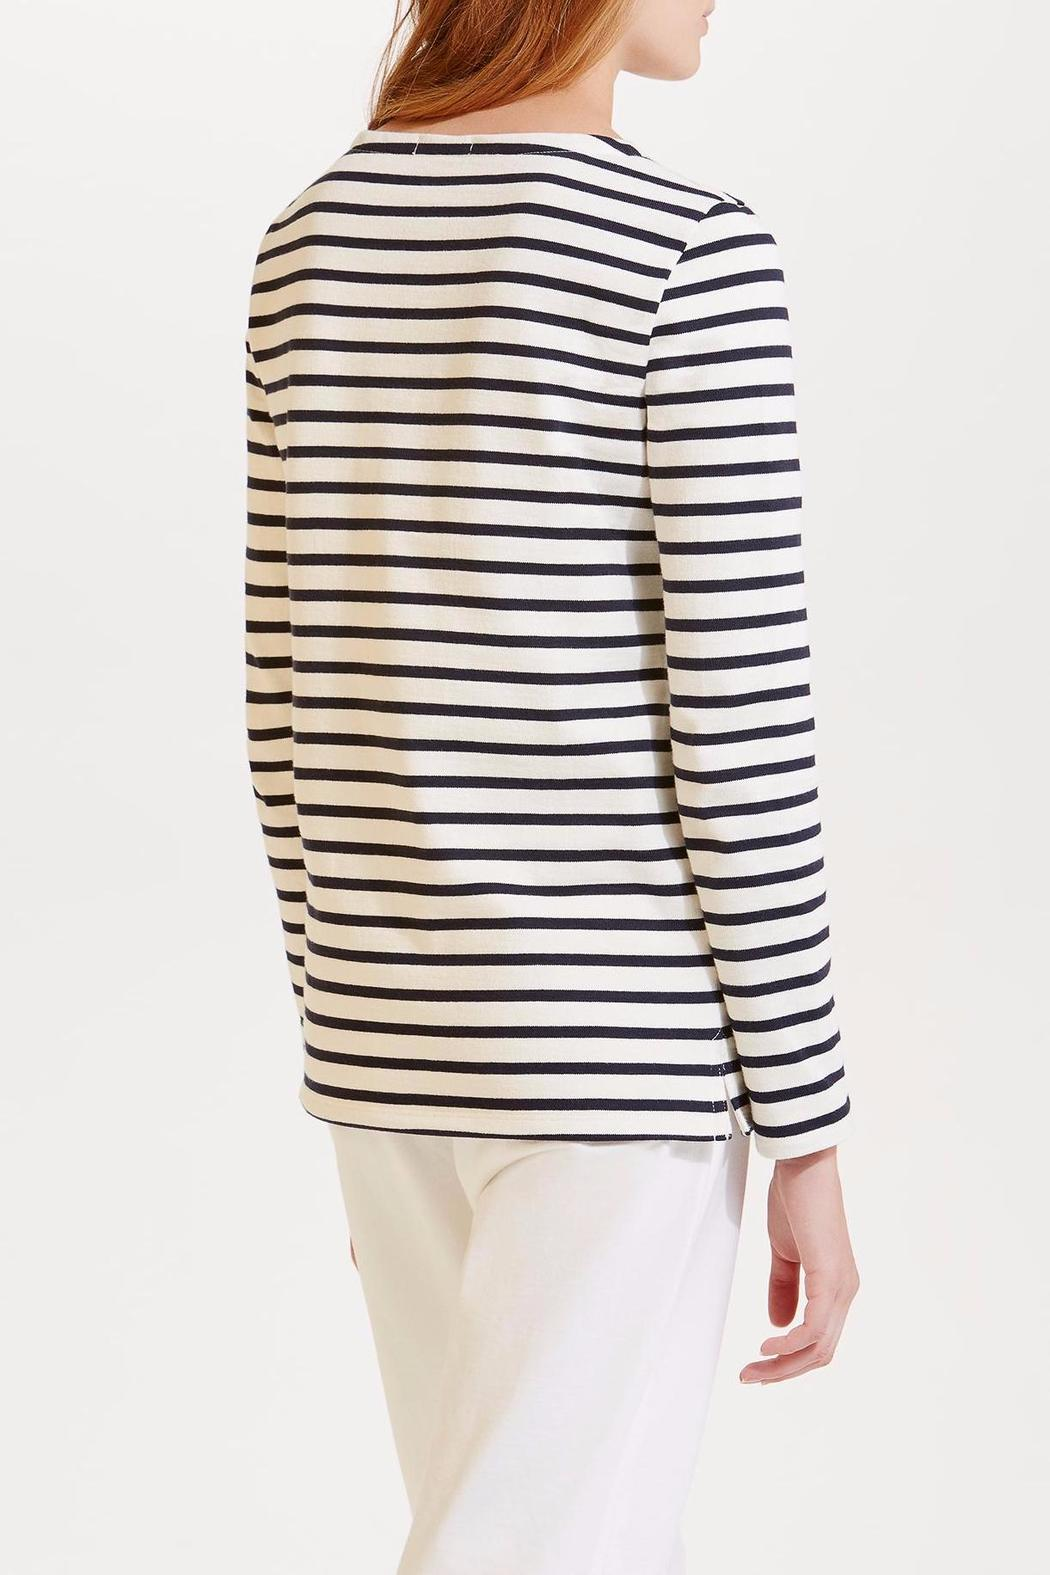 7aecfdad91e98 Petit Bateau Striped Cotton Top from Edinburgh by Just g Boutique ...